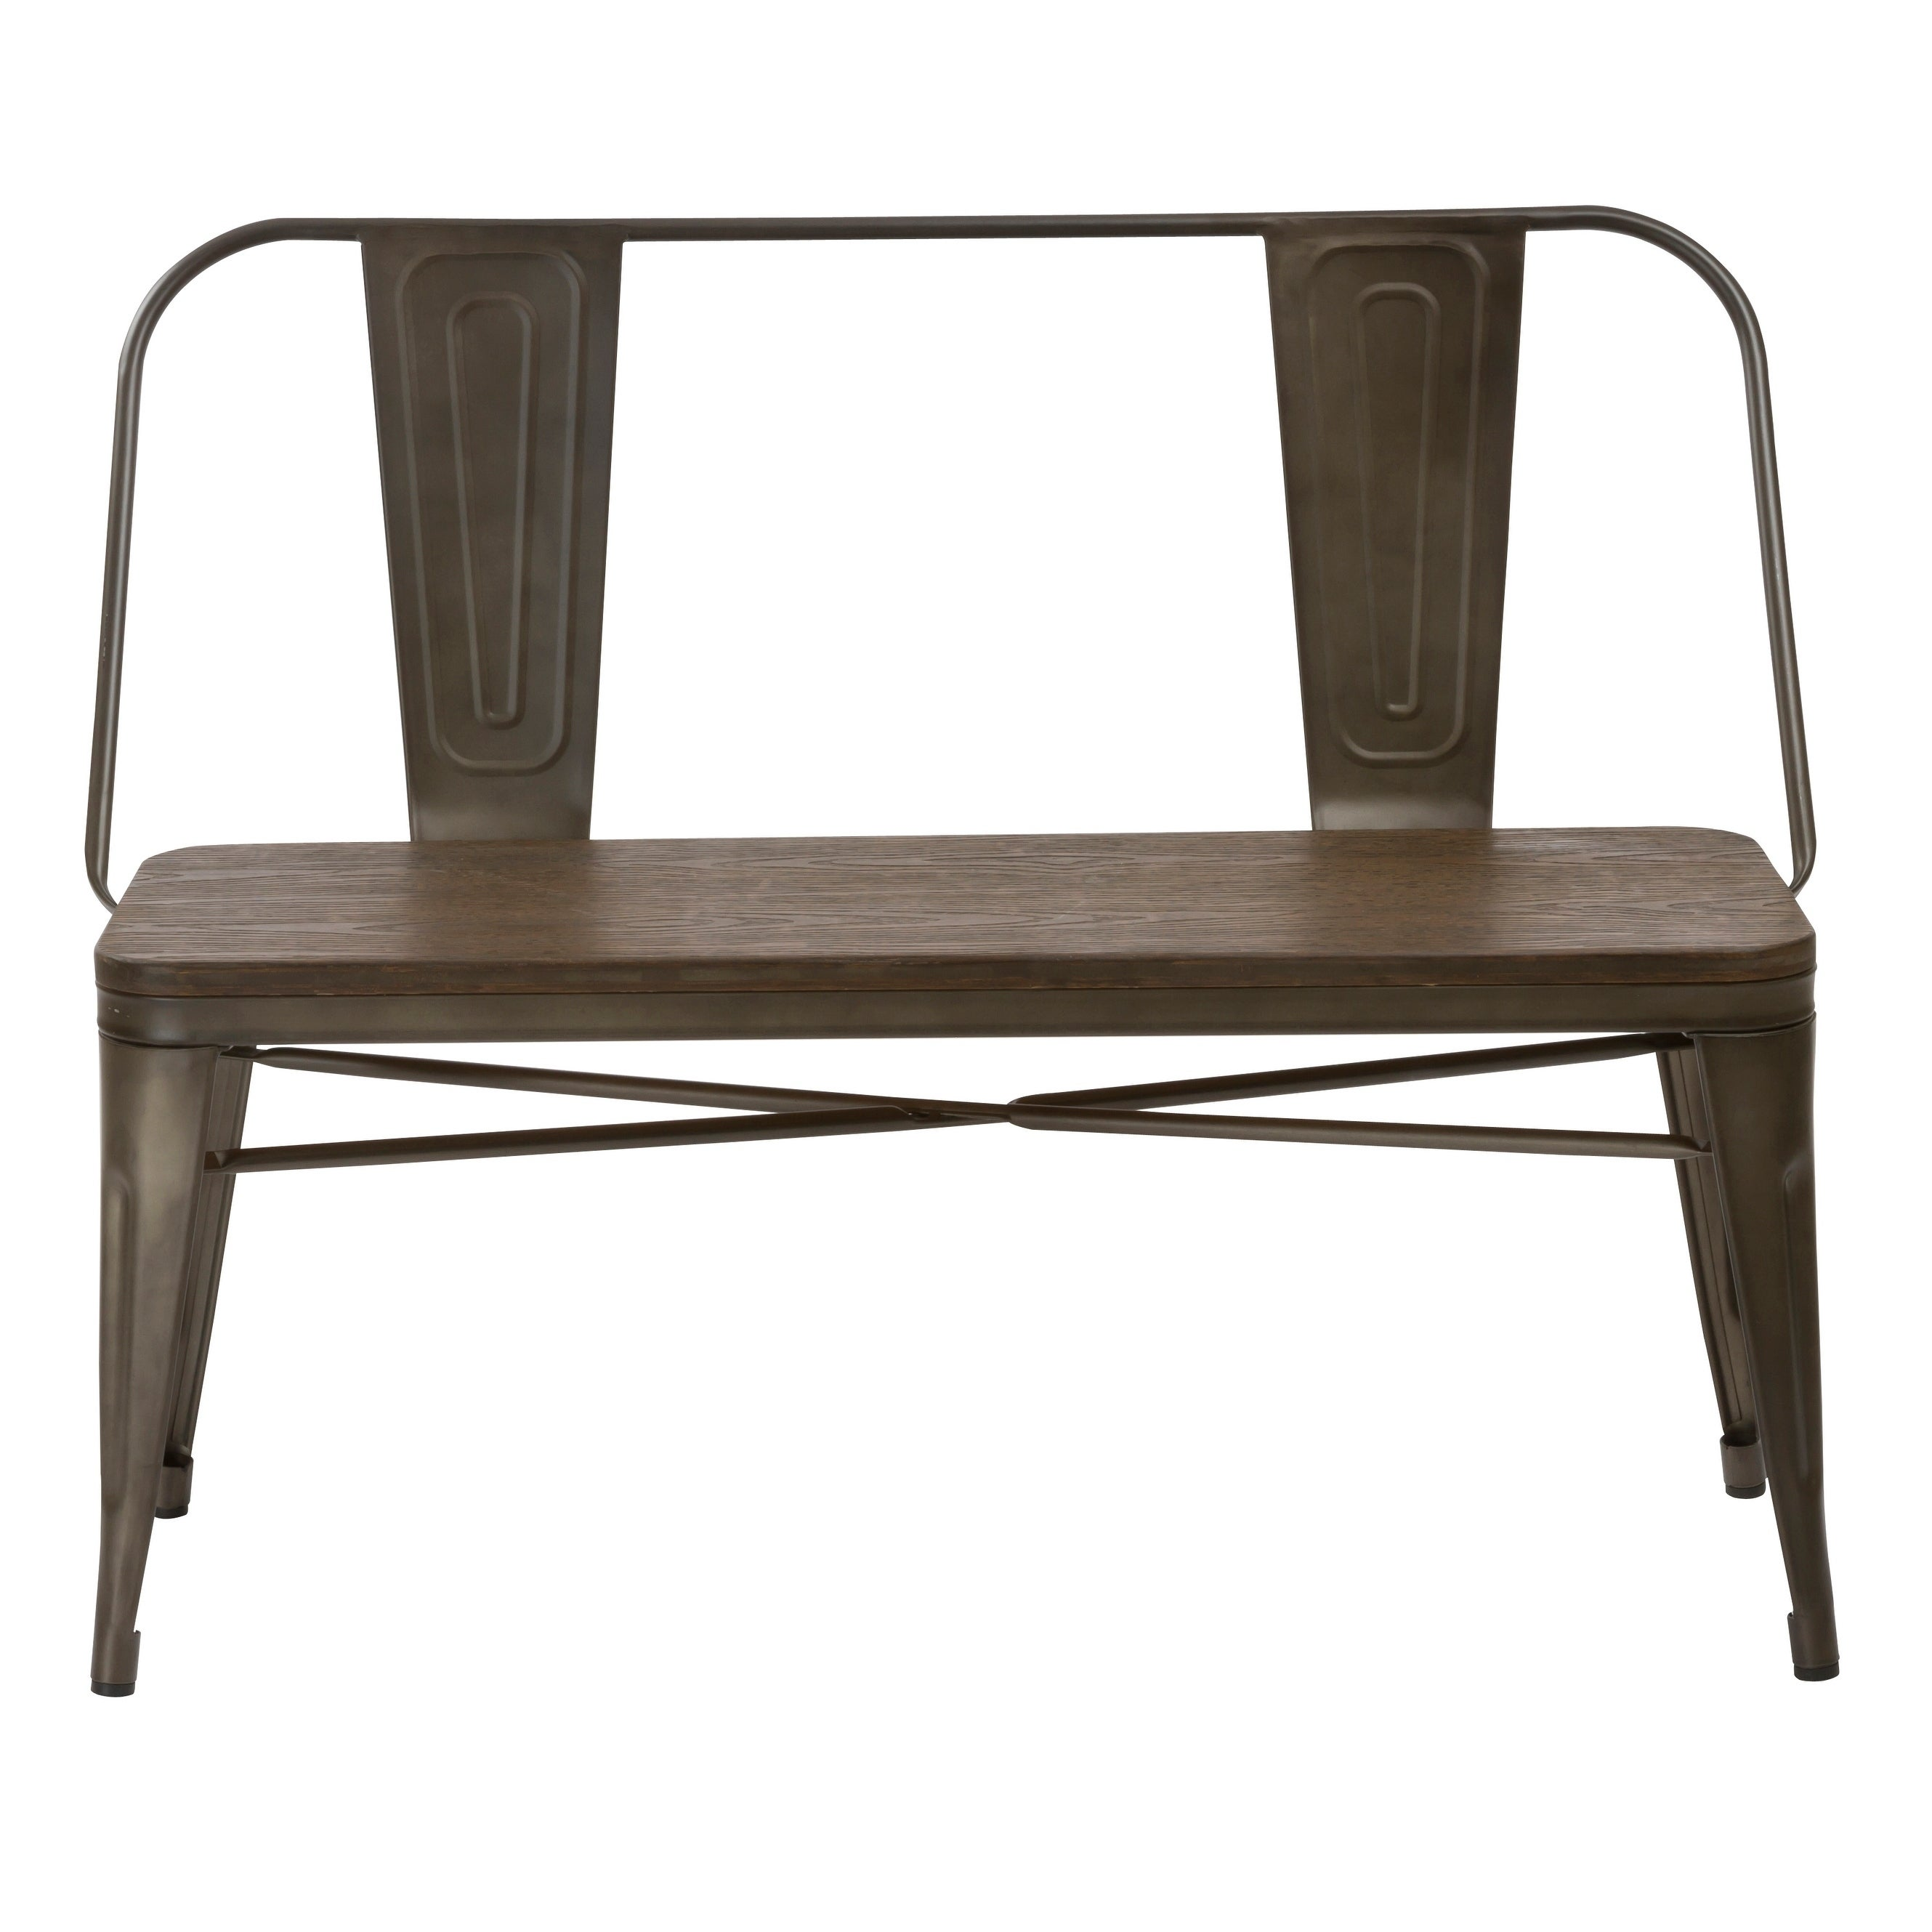 Shop industrial antique rustic wood metal dining bench full back free shipping today overstock com 21587206